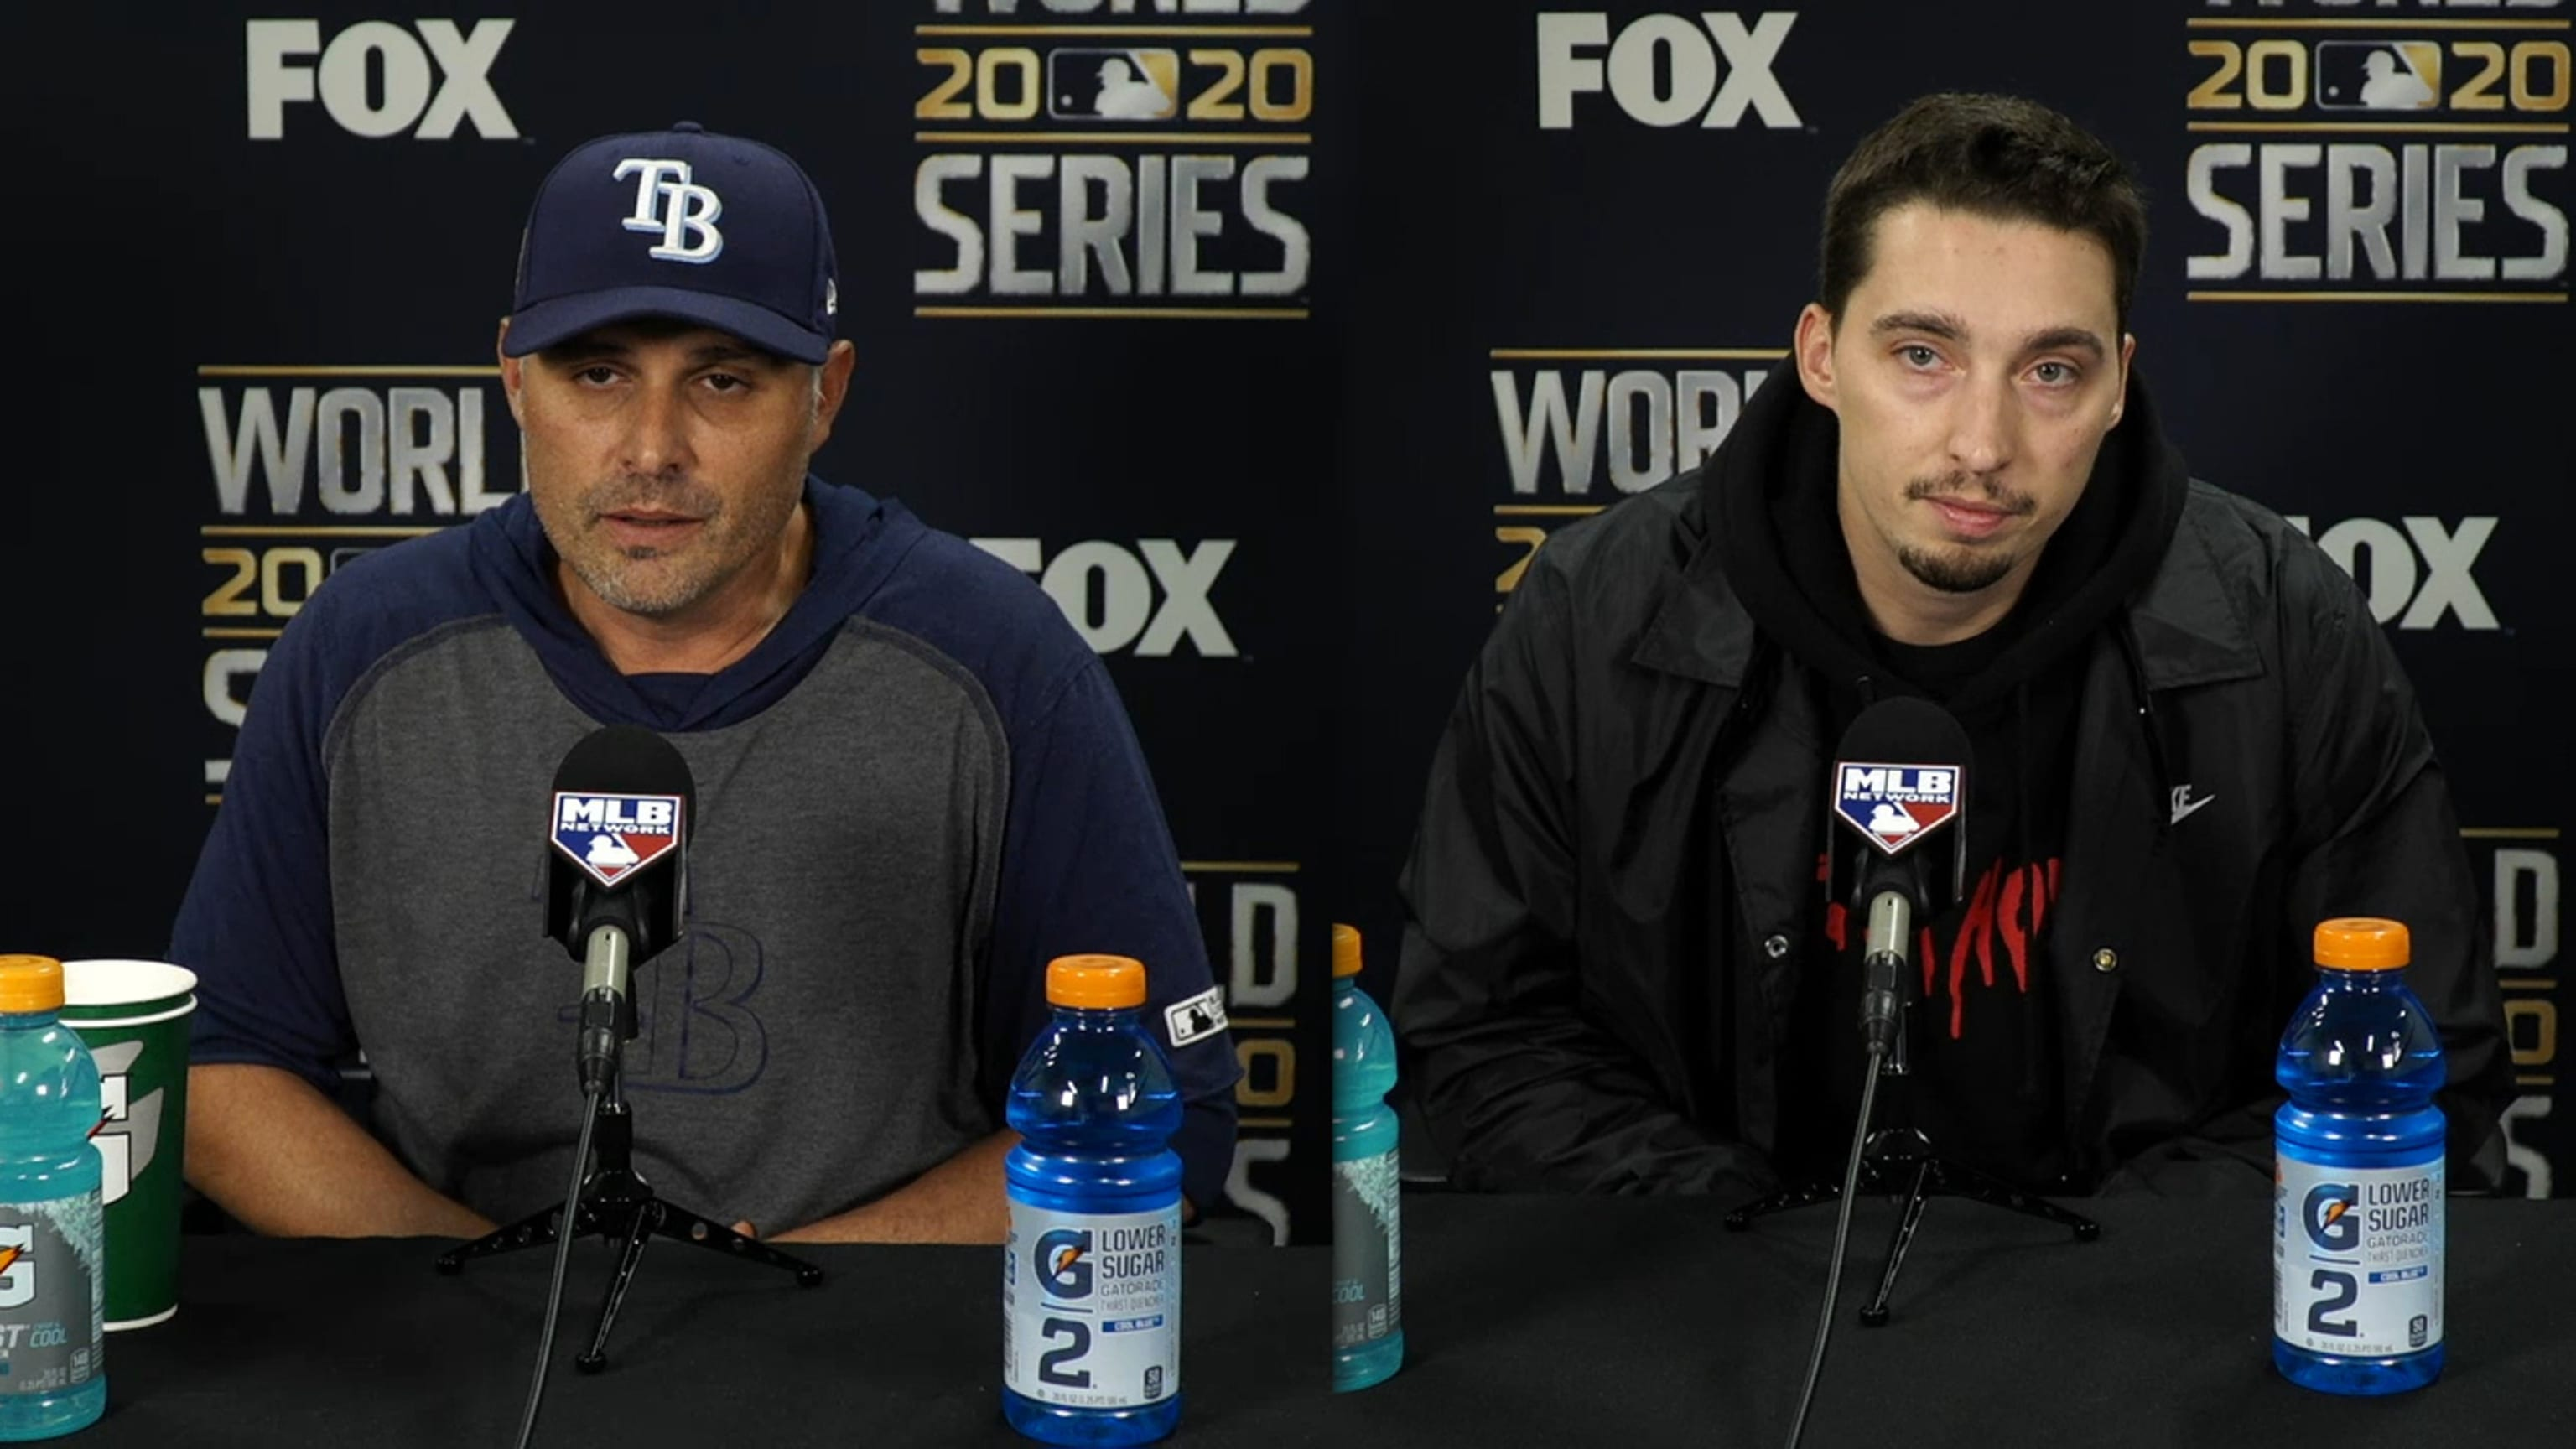 Cash, Snell on pitching change